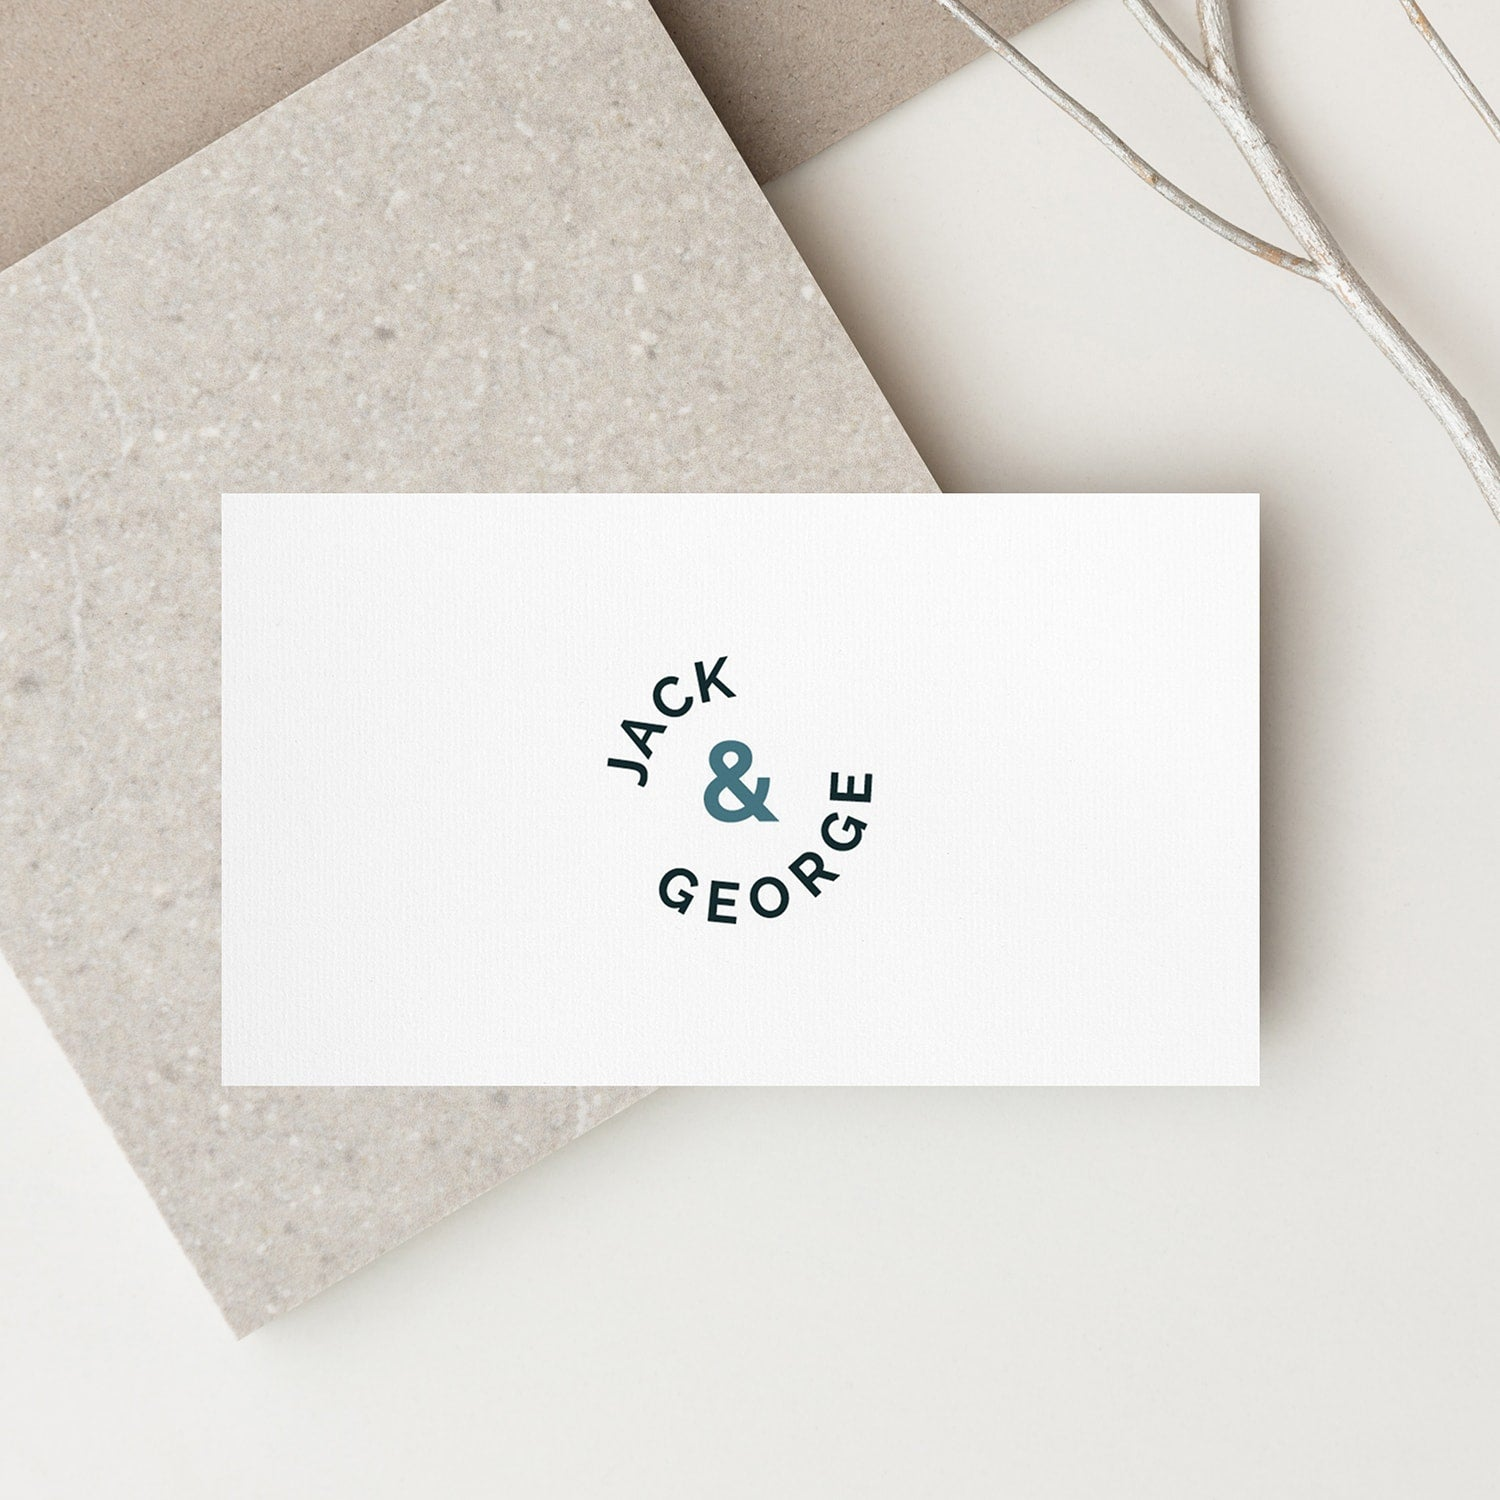 Jack & George Hero Branding Kit Image_Copyright Tiny Crowd